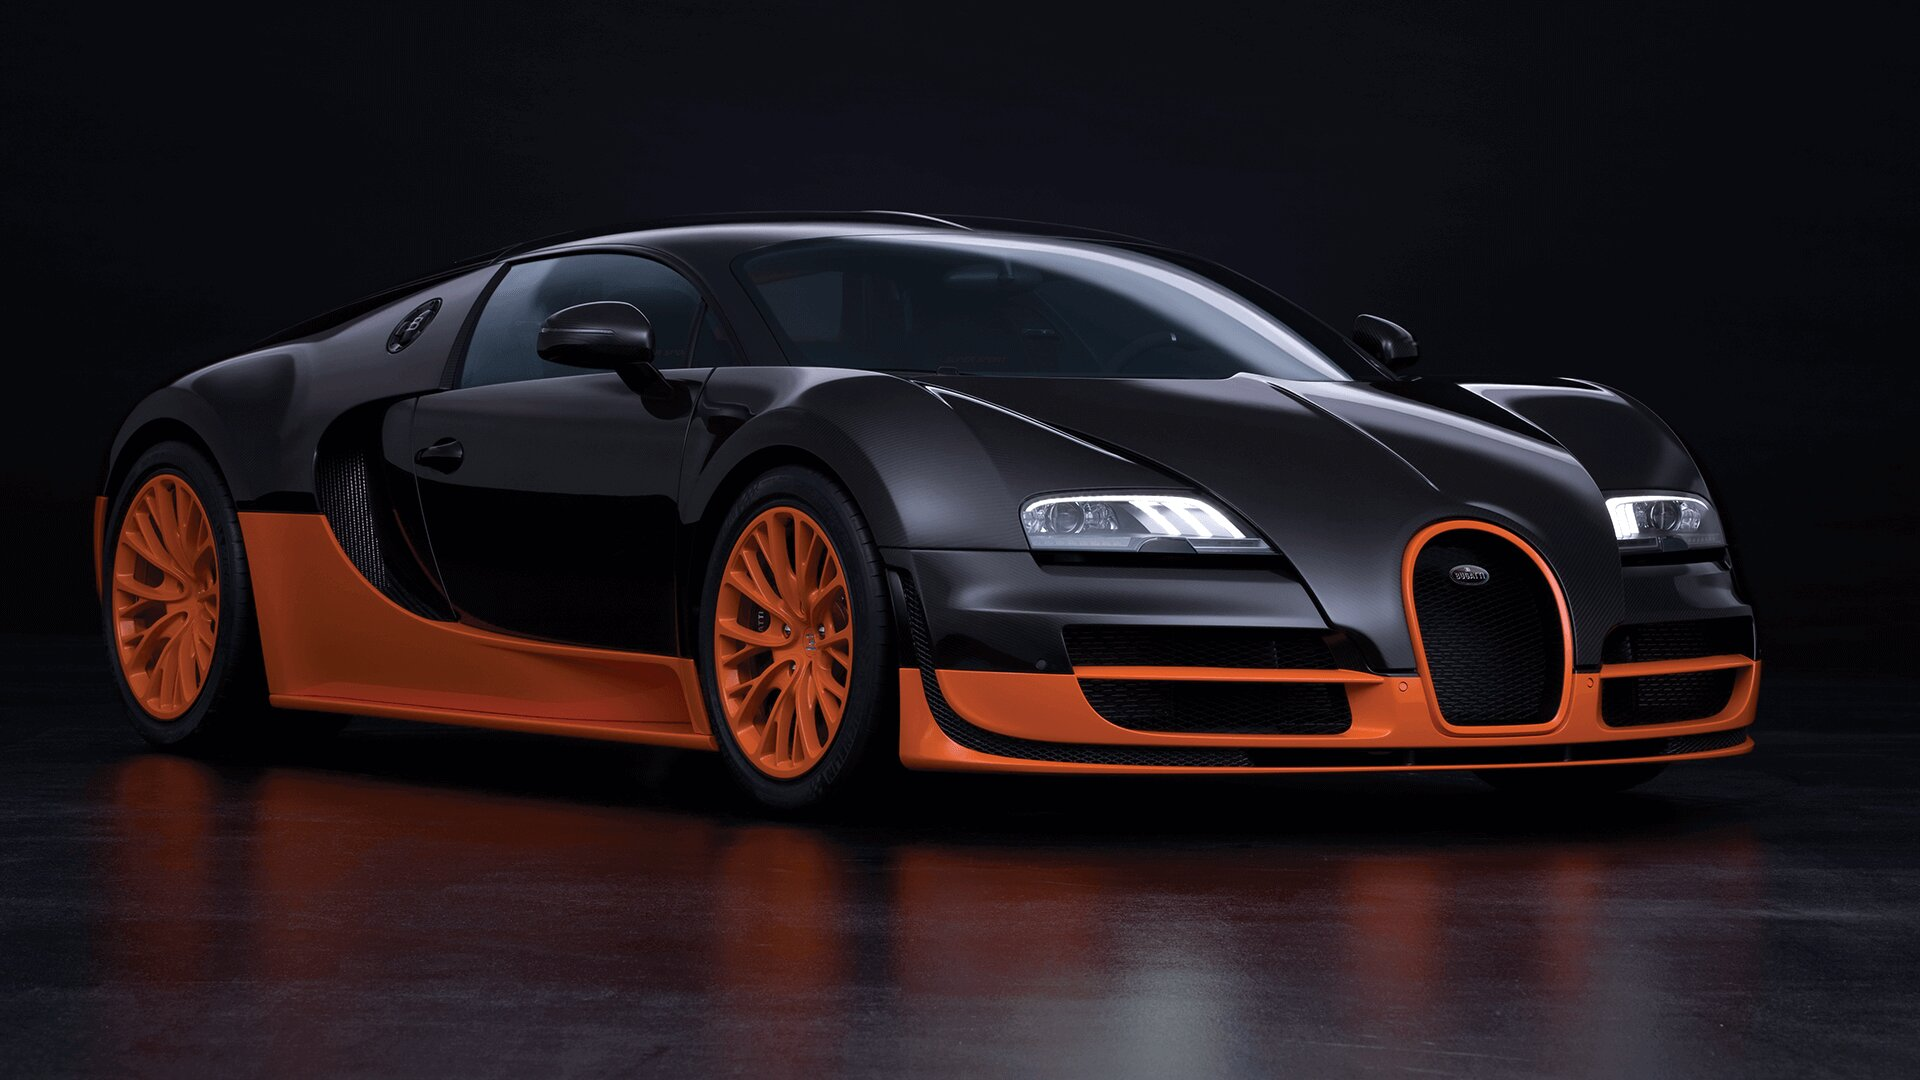 diamond supercar on limited front is million car fortune entirely a handcrafted production beauty web performance focused the chiron bugatti new